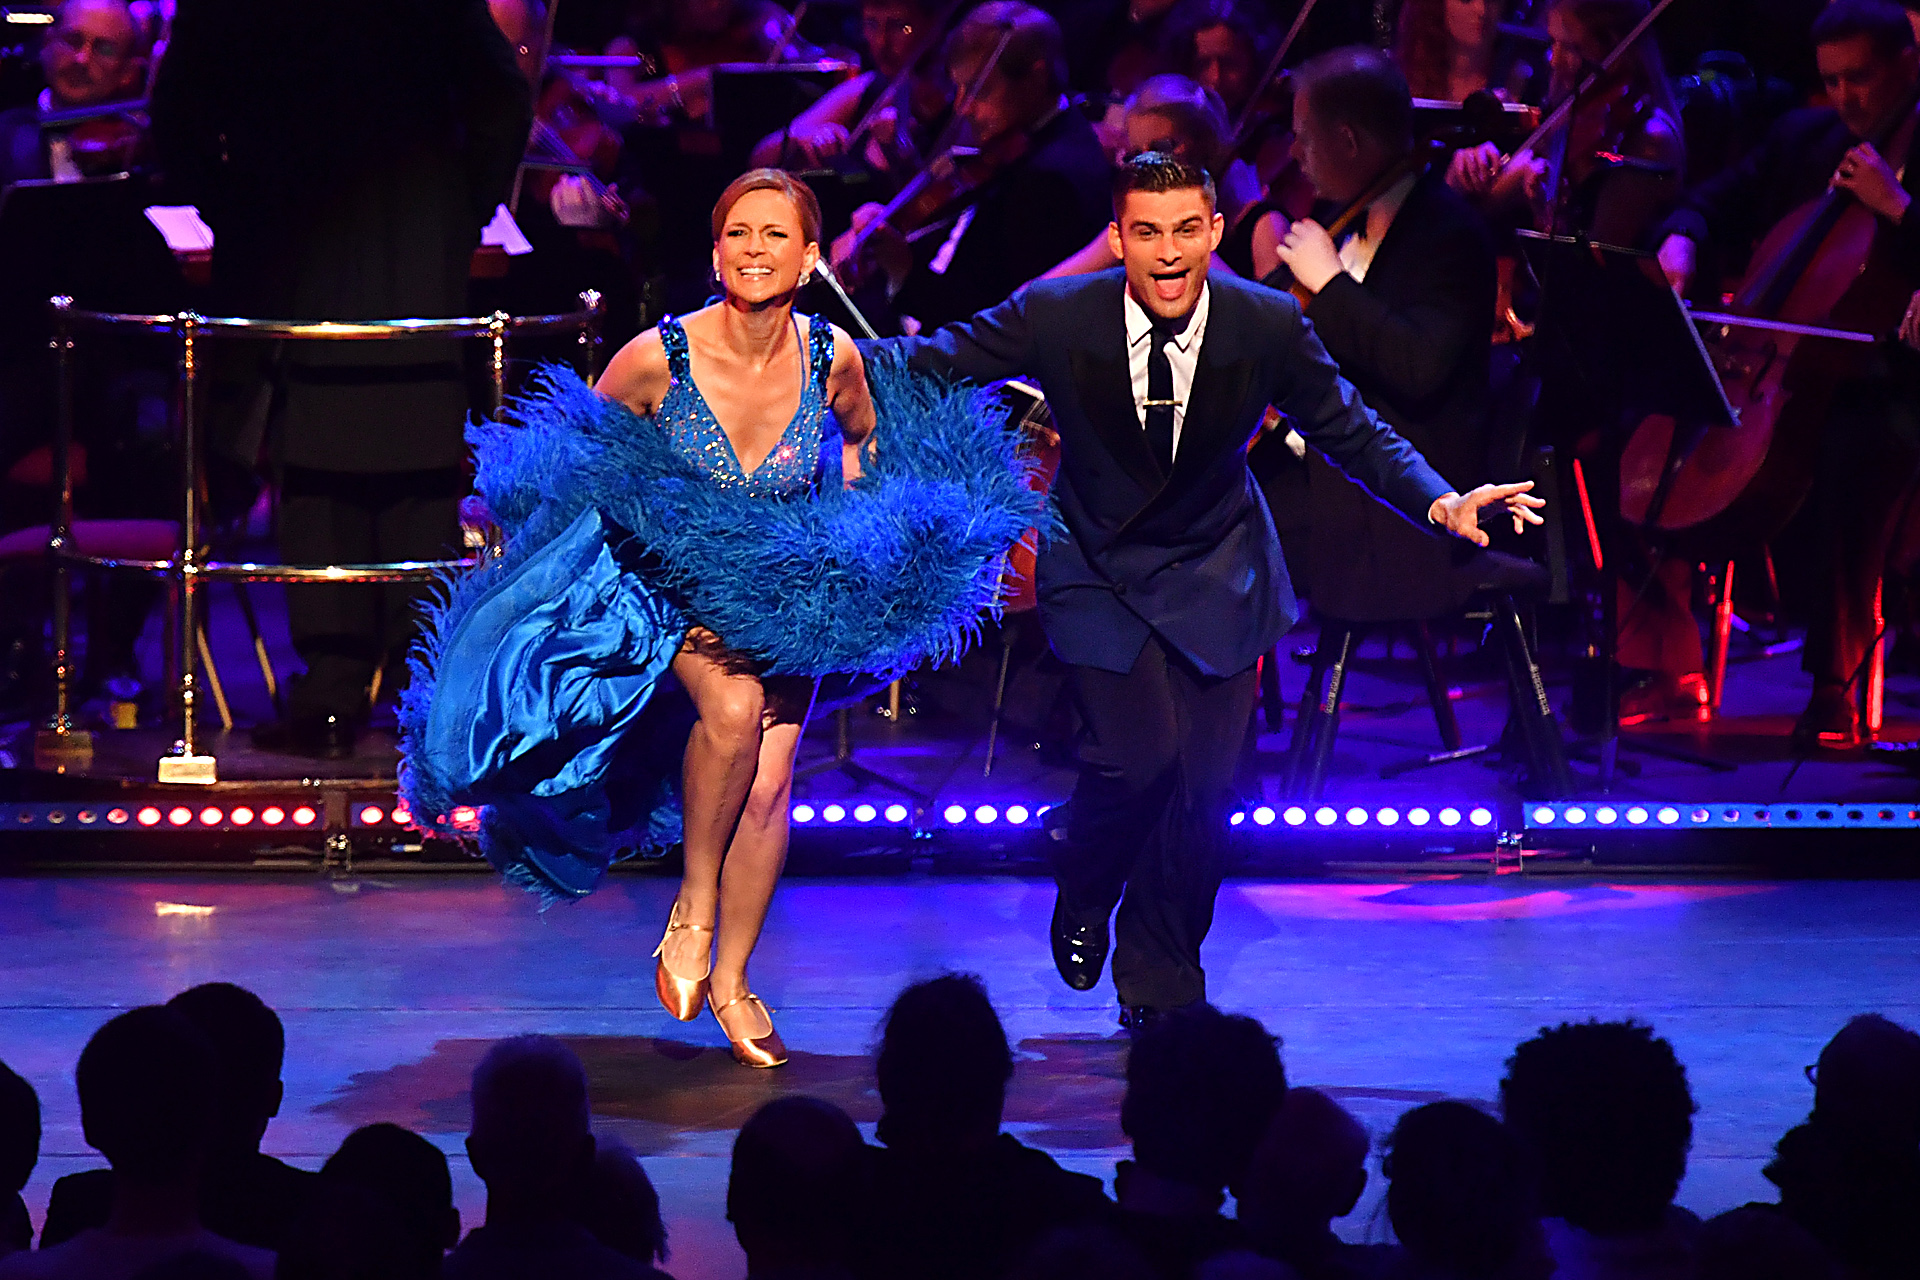 Prom 8: Katie Derham and Aljaz Skorjanec dance at the Strictly Prom with conductor Gavin Sutherland and the BBC Concert Orchestra at the Royal Albert Hall on 21st July 2016. Photo by Mark Allan/BBC.